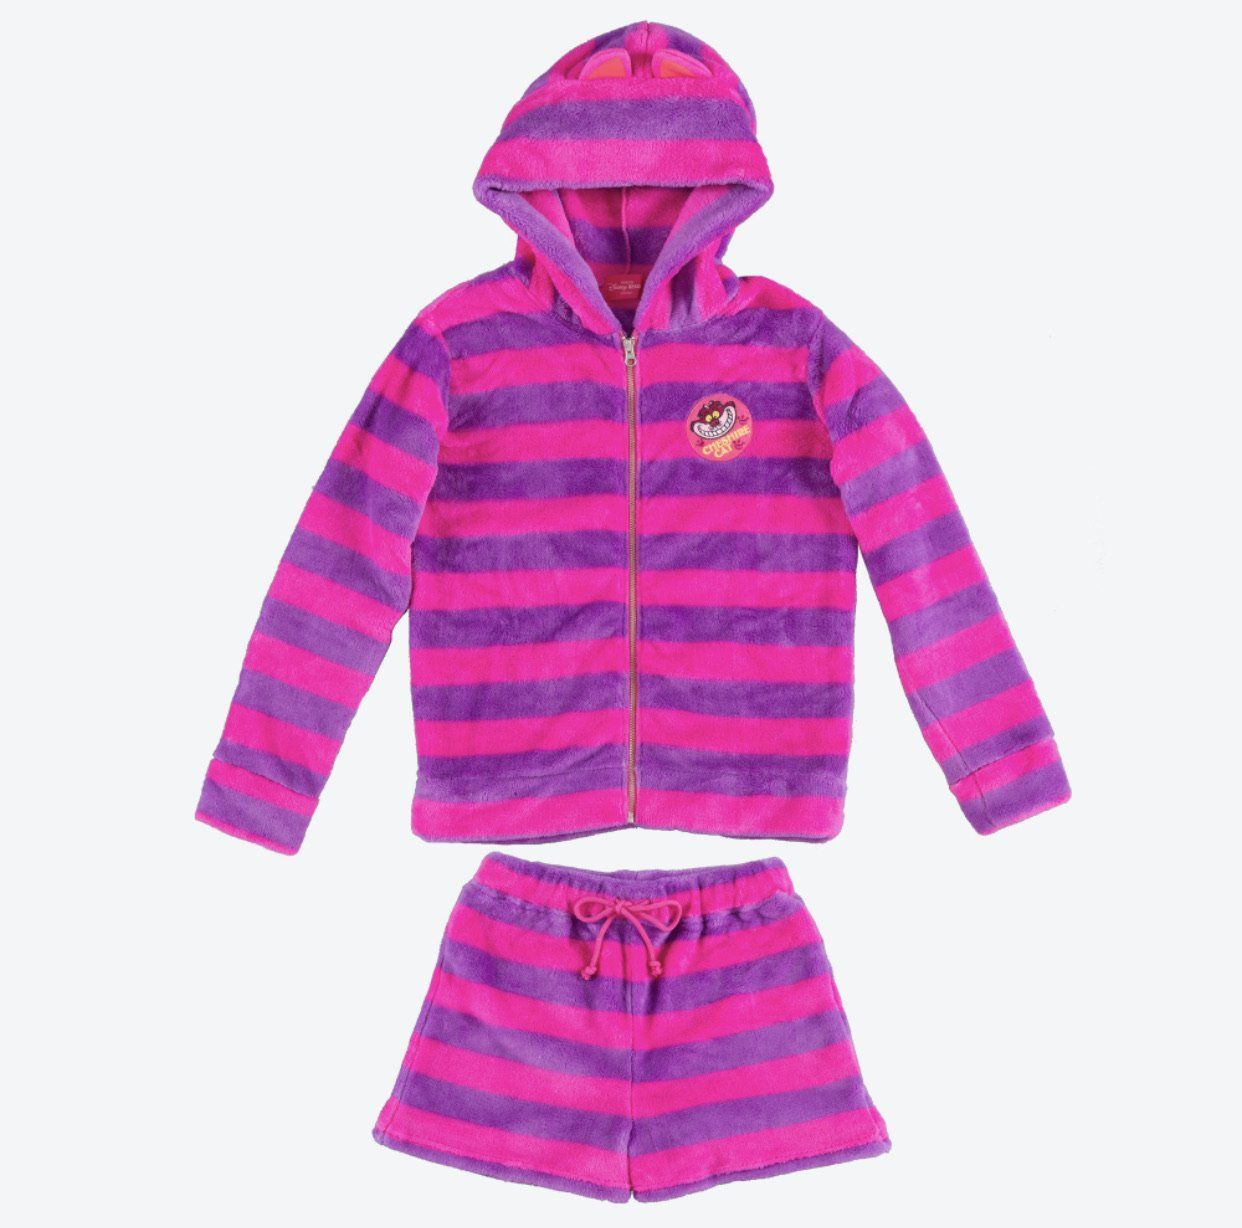 TDR - Fluffy Pajamas Set x Cheshire Cat